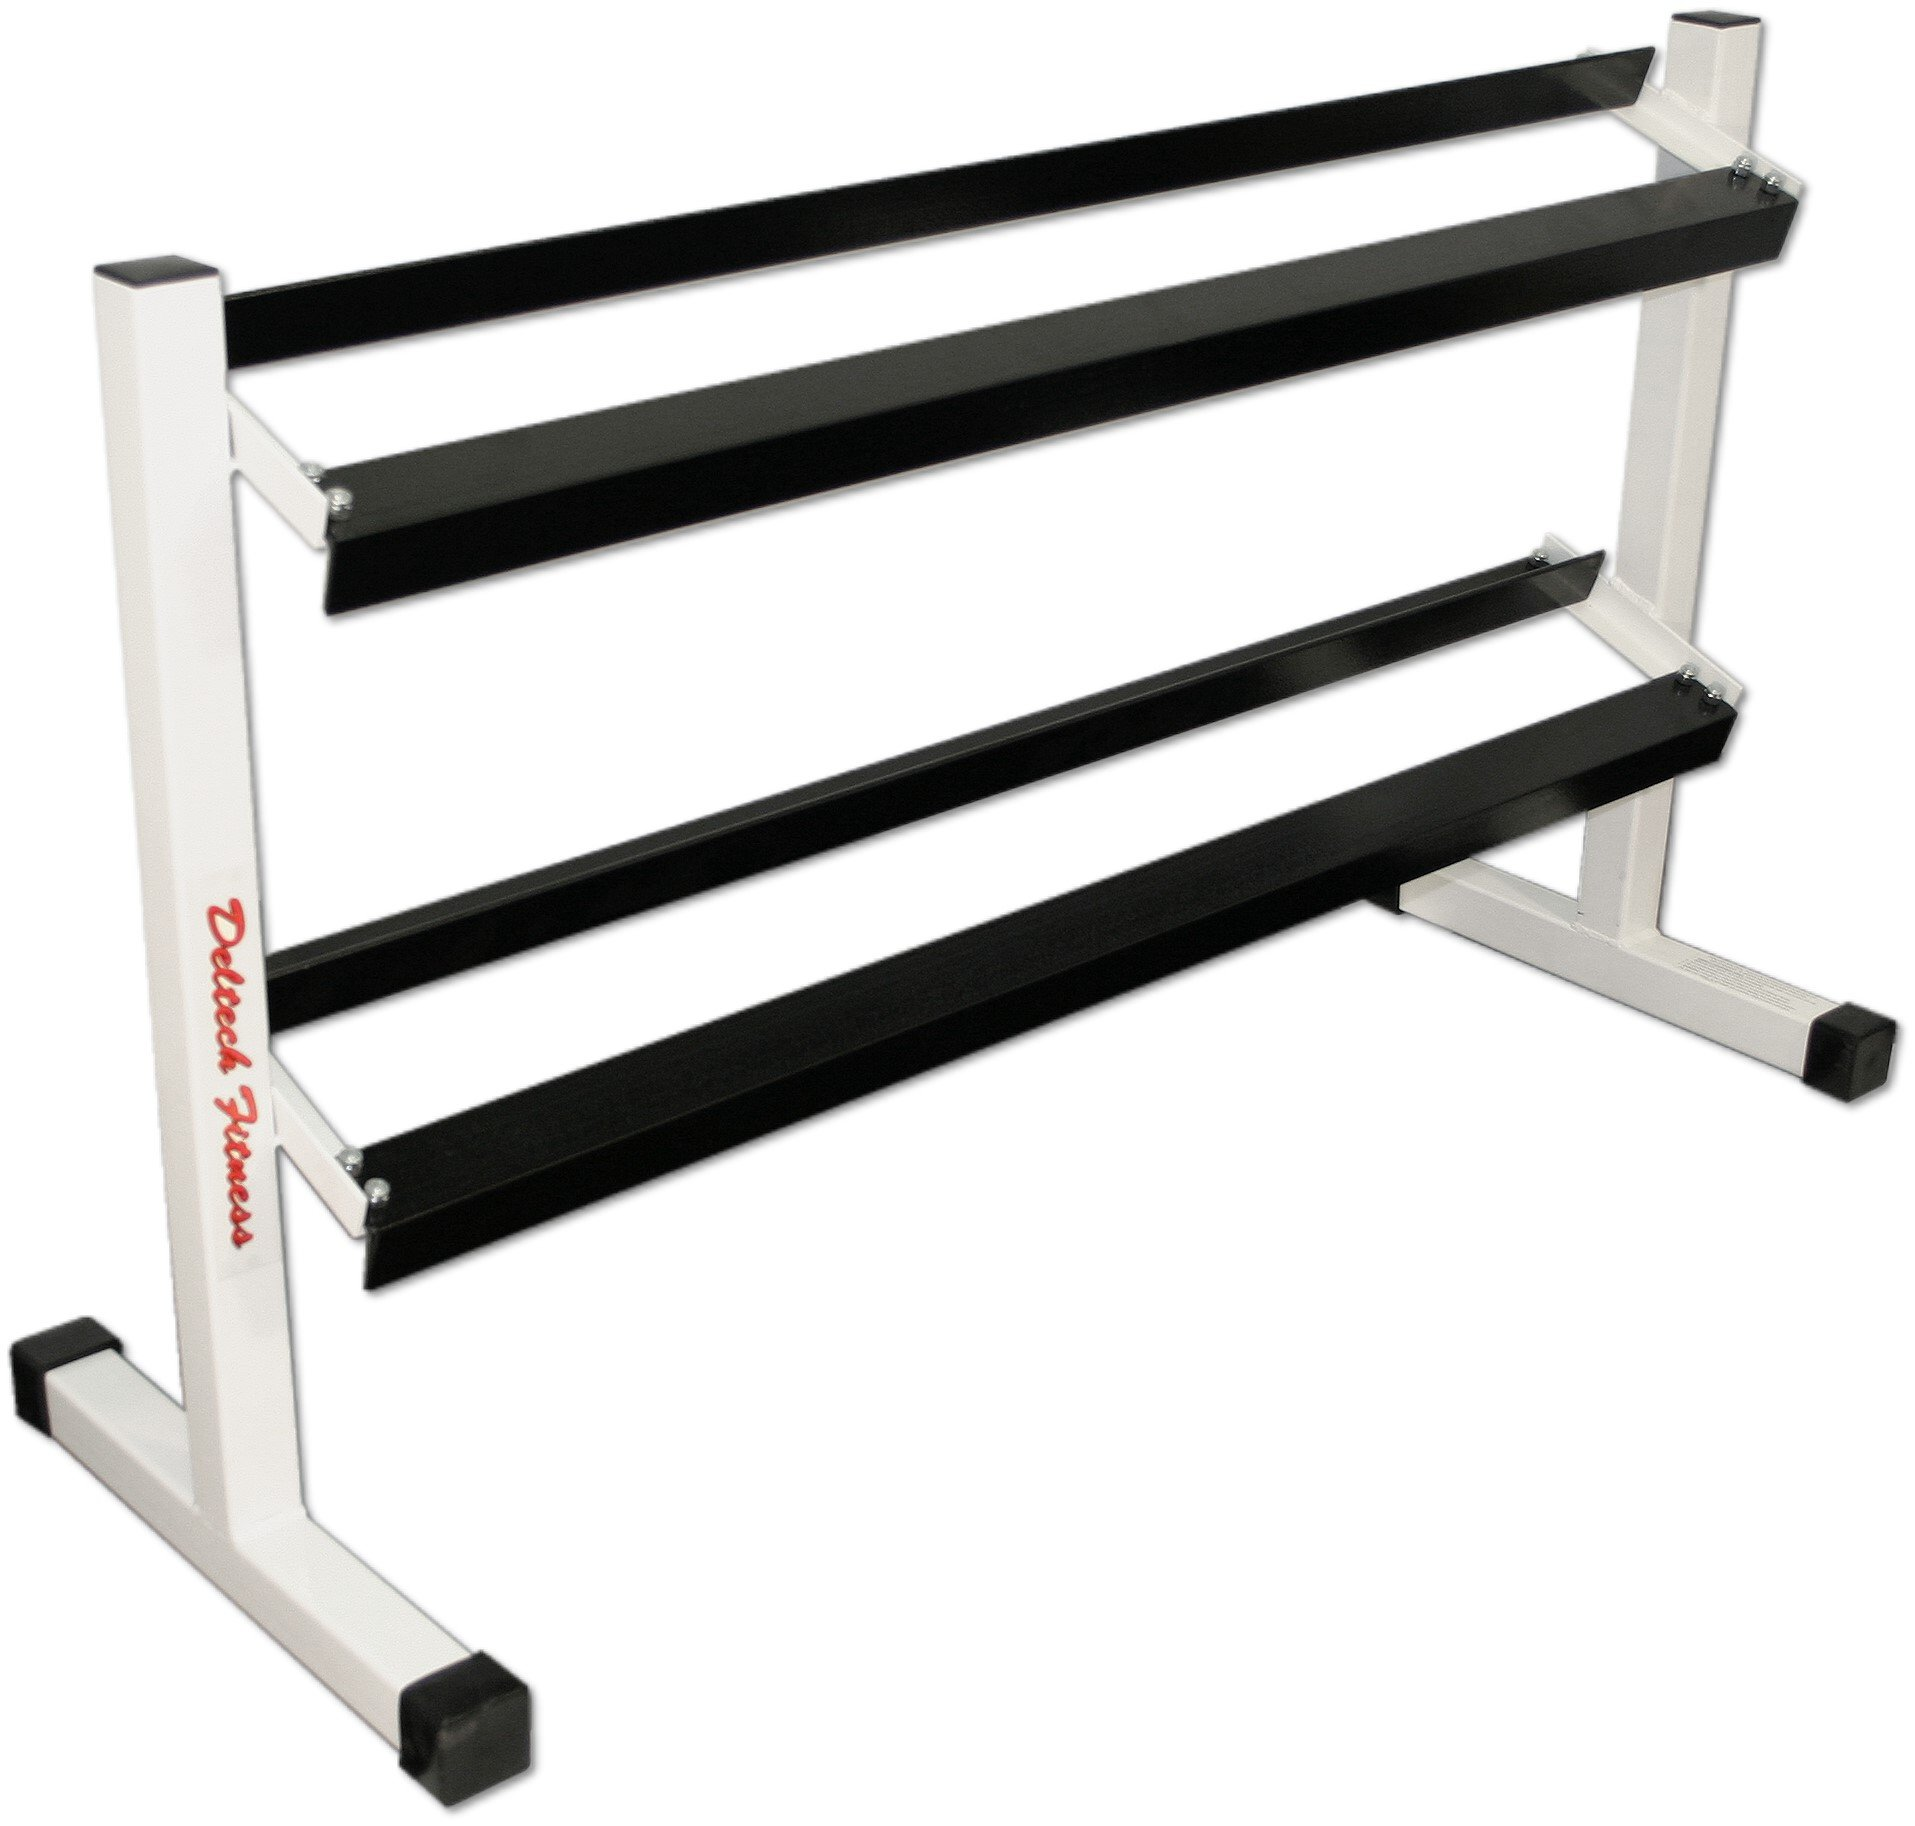 Deltech Fitness Two Tier 54'' Dumbbell Rack